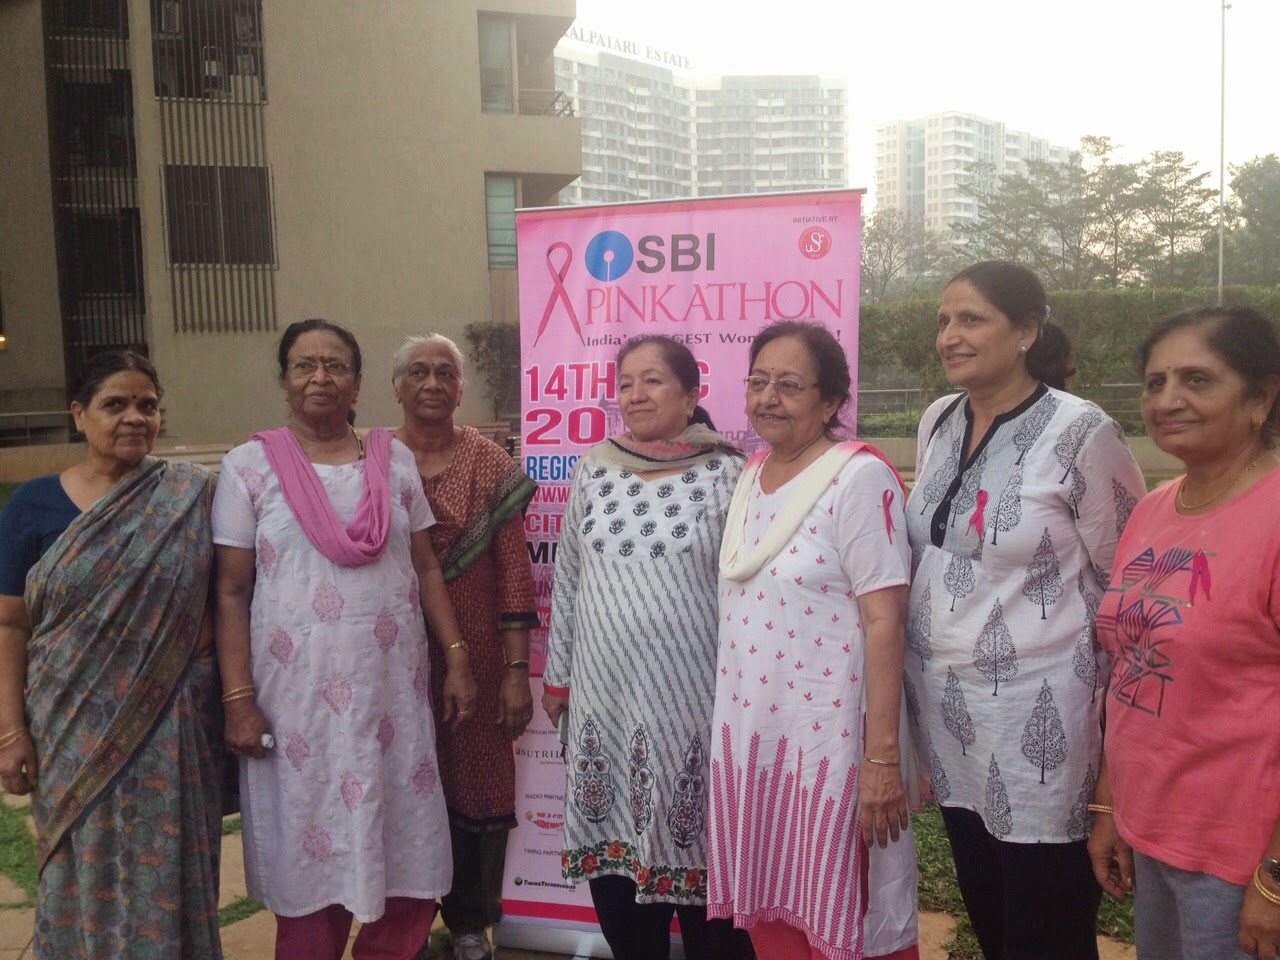 It-was-lovely-to-see-senior-citizens-participating-Pinkathon